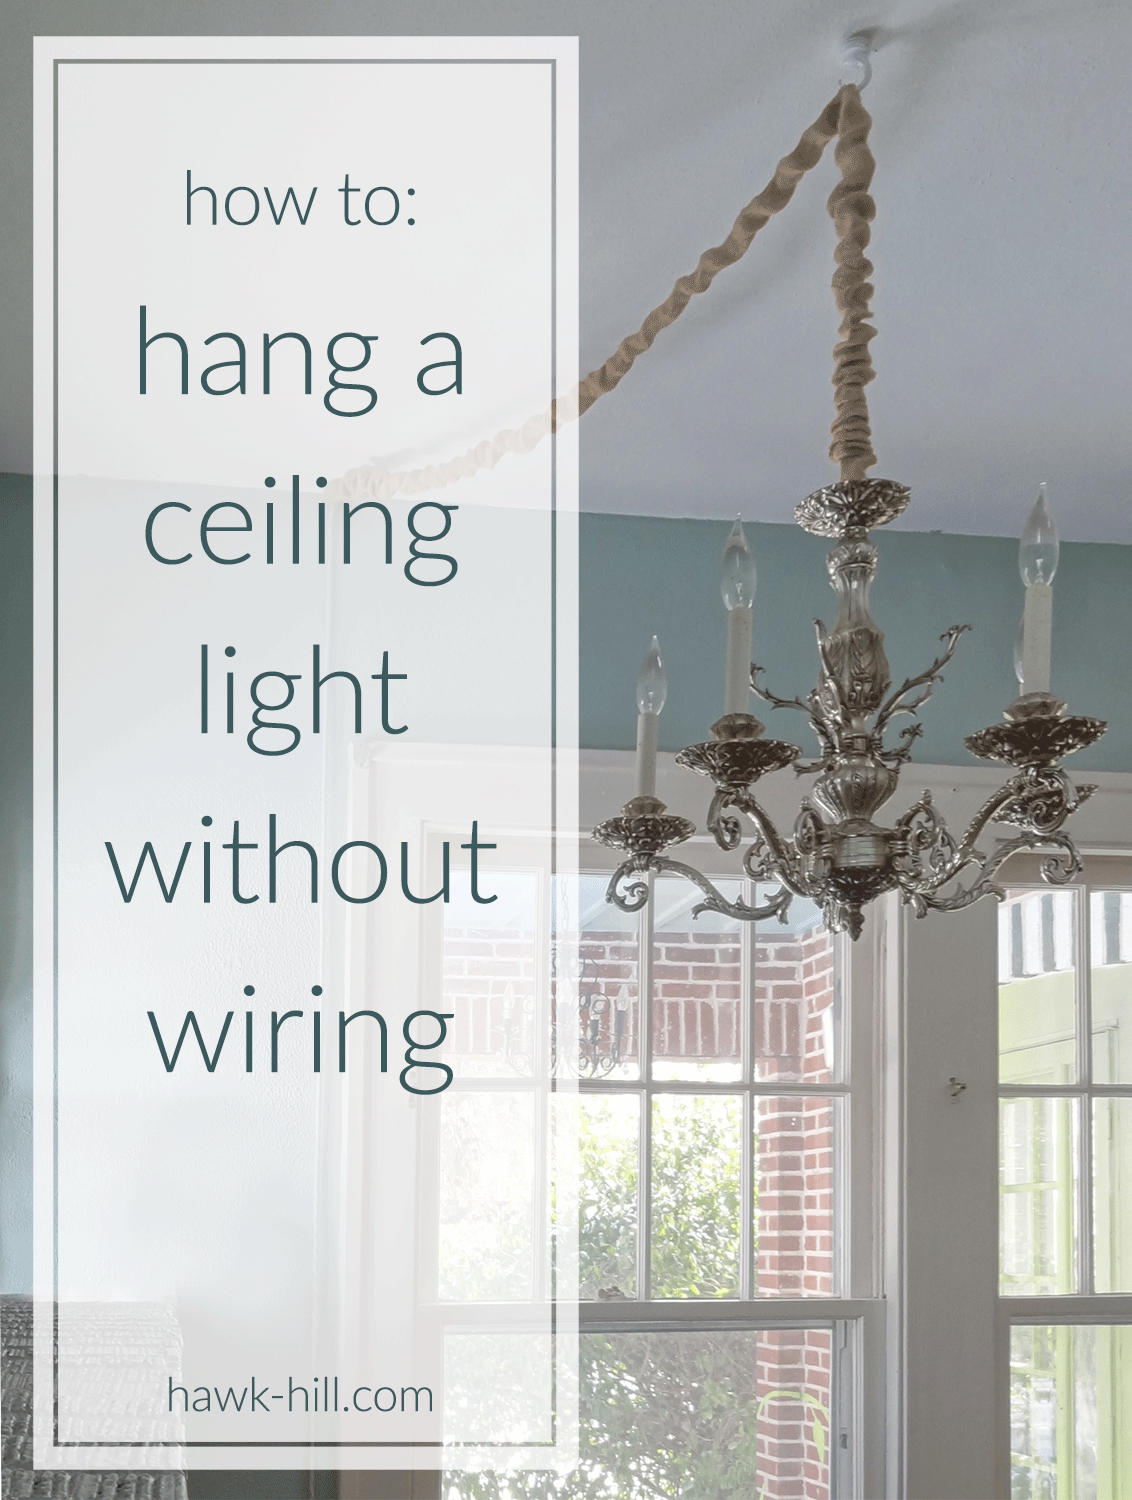 Instructions For Hanging A Ceiling Light Without Wiring